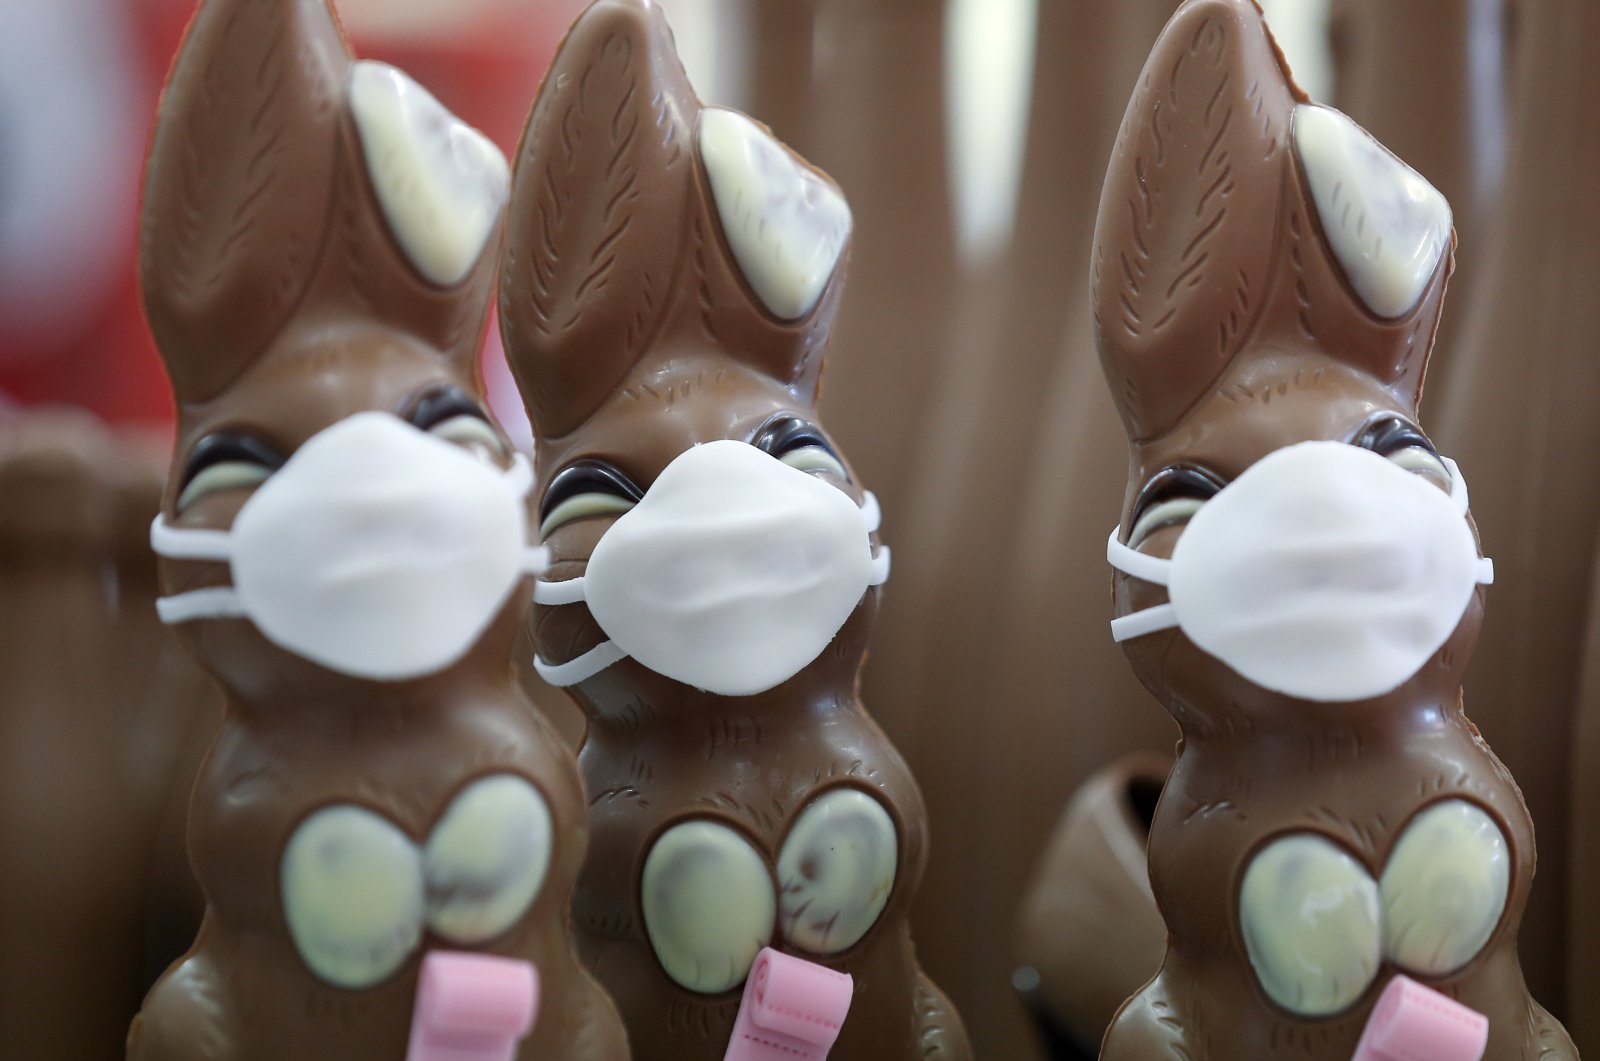 Chocolate Easter bunnies wearing protective masks and holding rolls of toilet paper are seen at a chocolate factory in Pirmasens, Germany, April 9, 2020. (Reuters Photo)